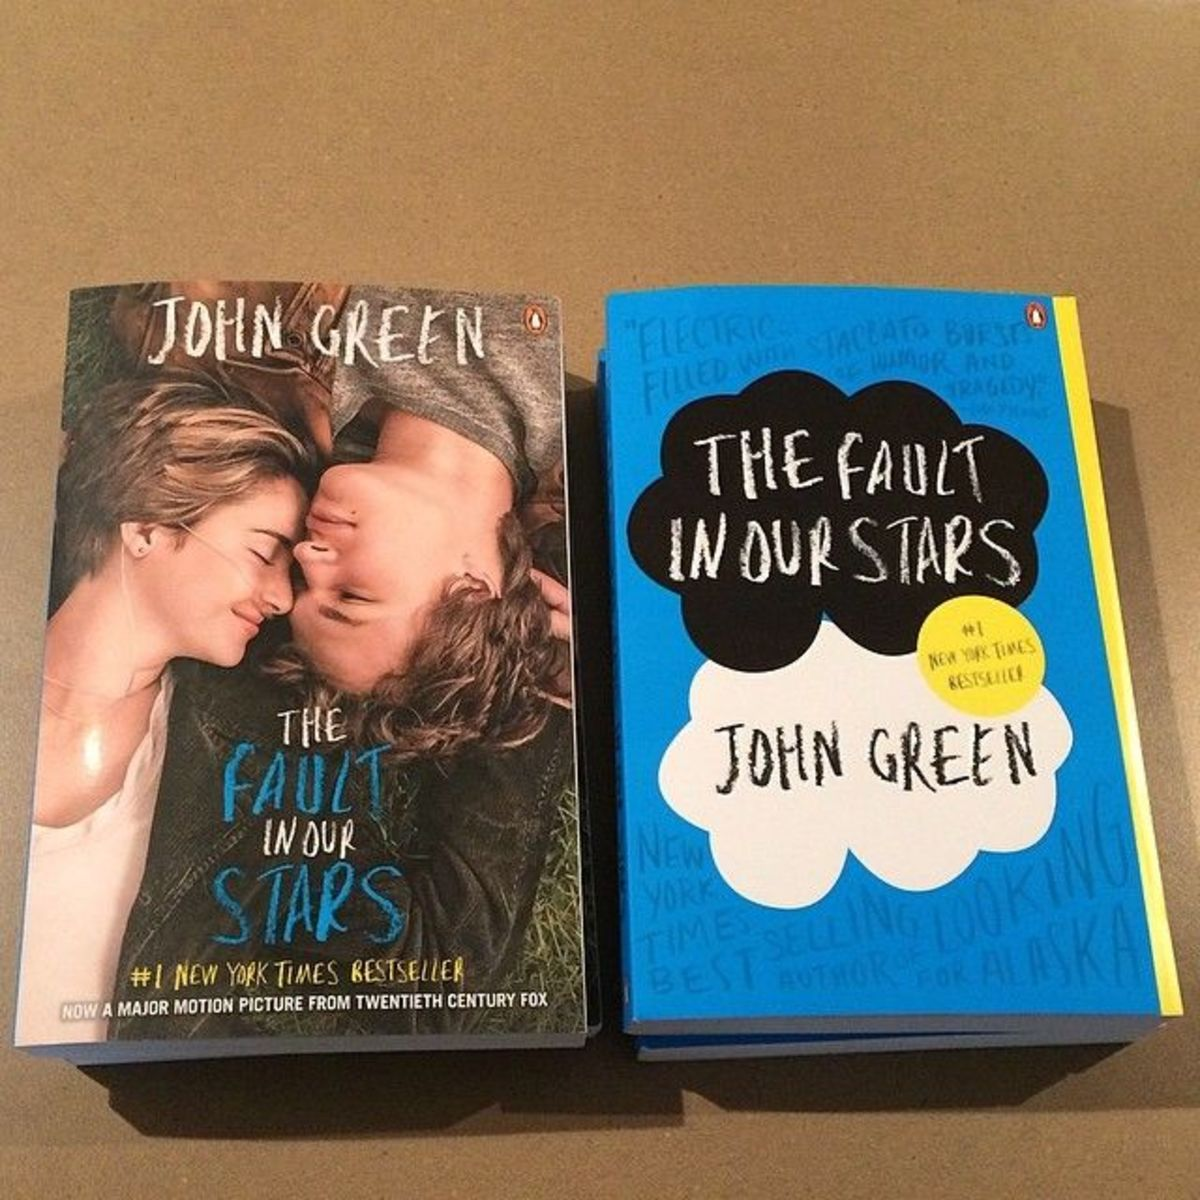 Review of 'The Fault in Our Stars' Book and Movie